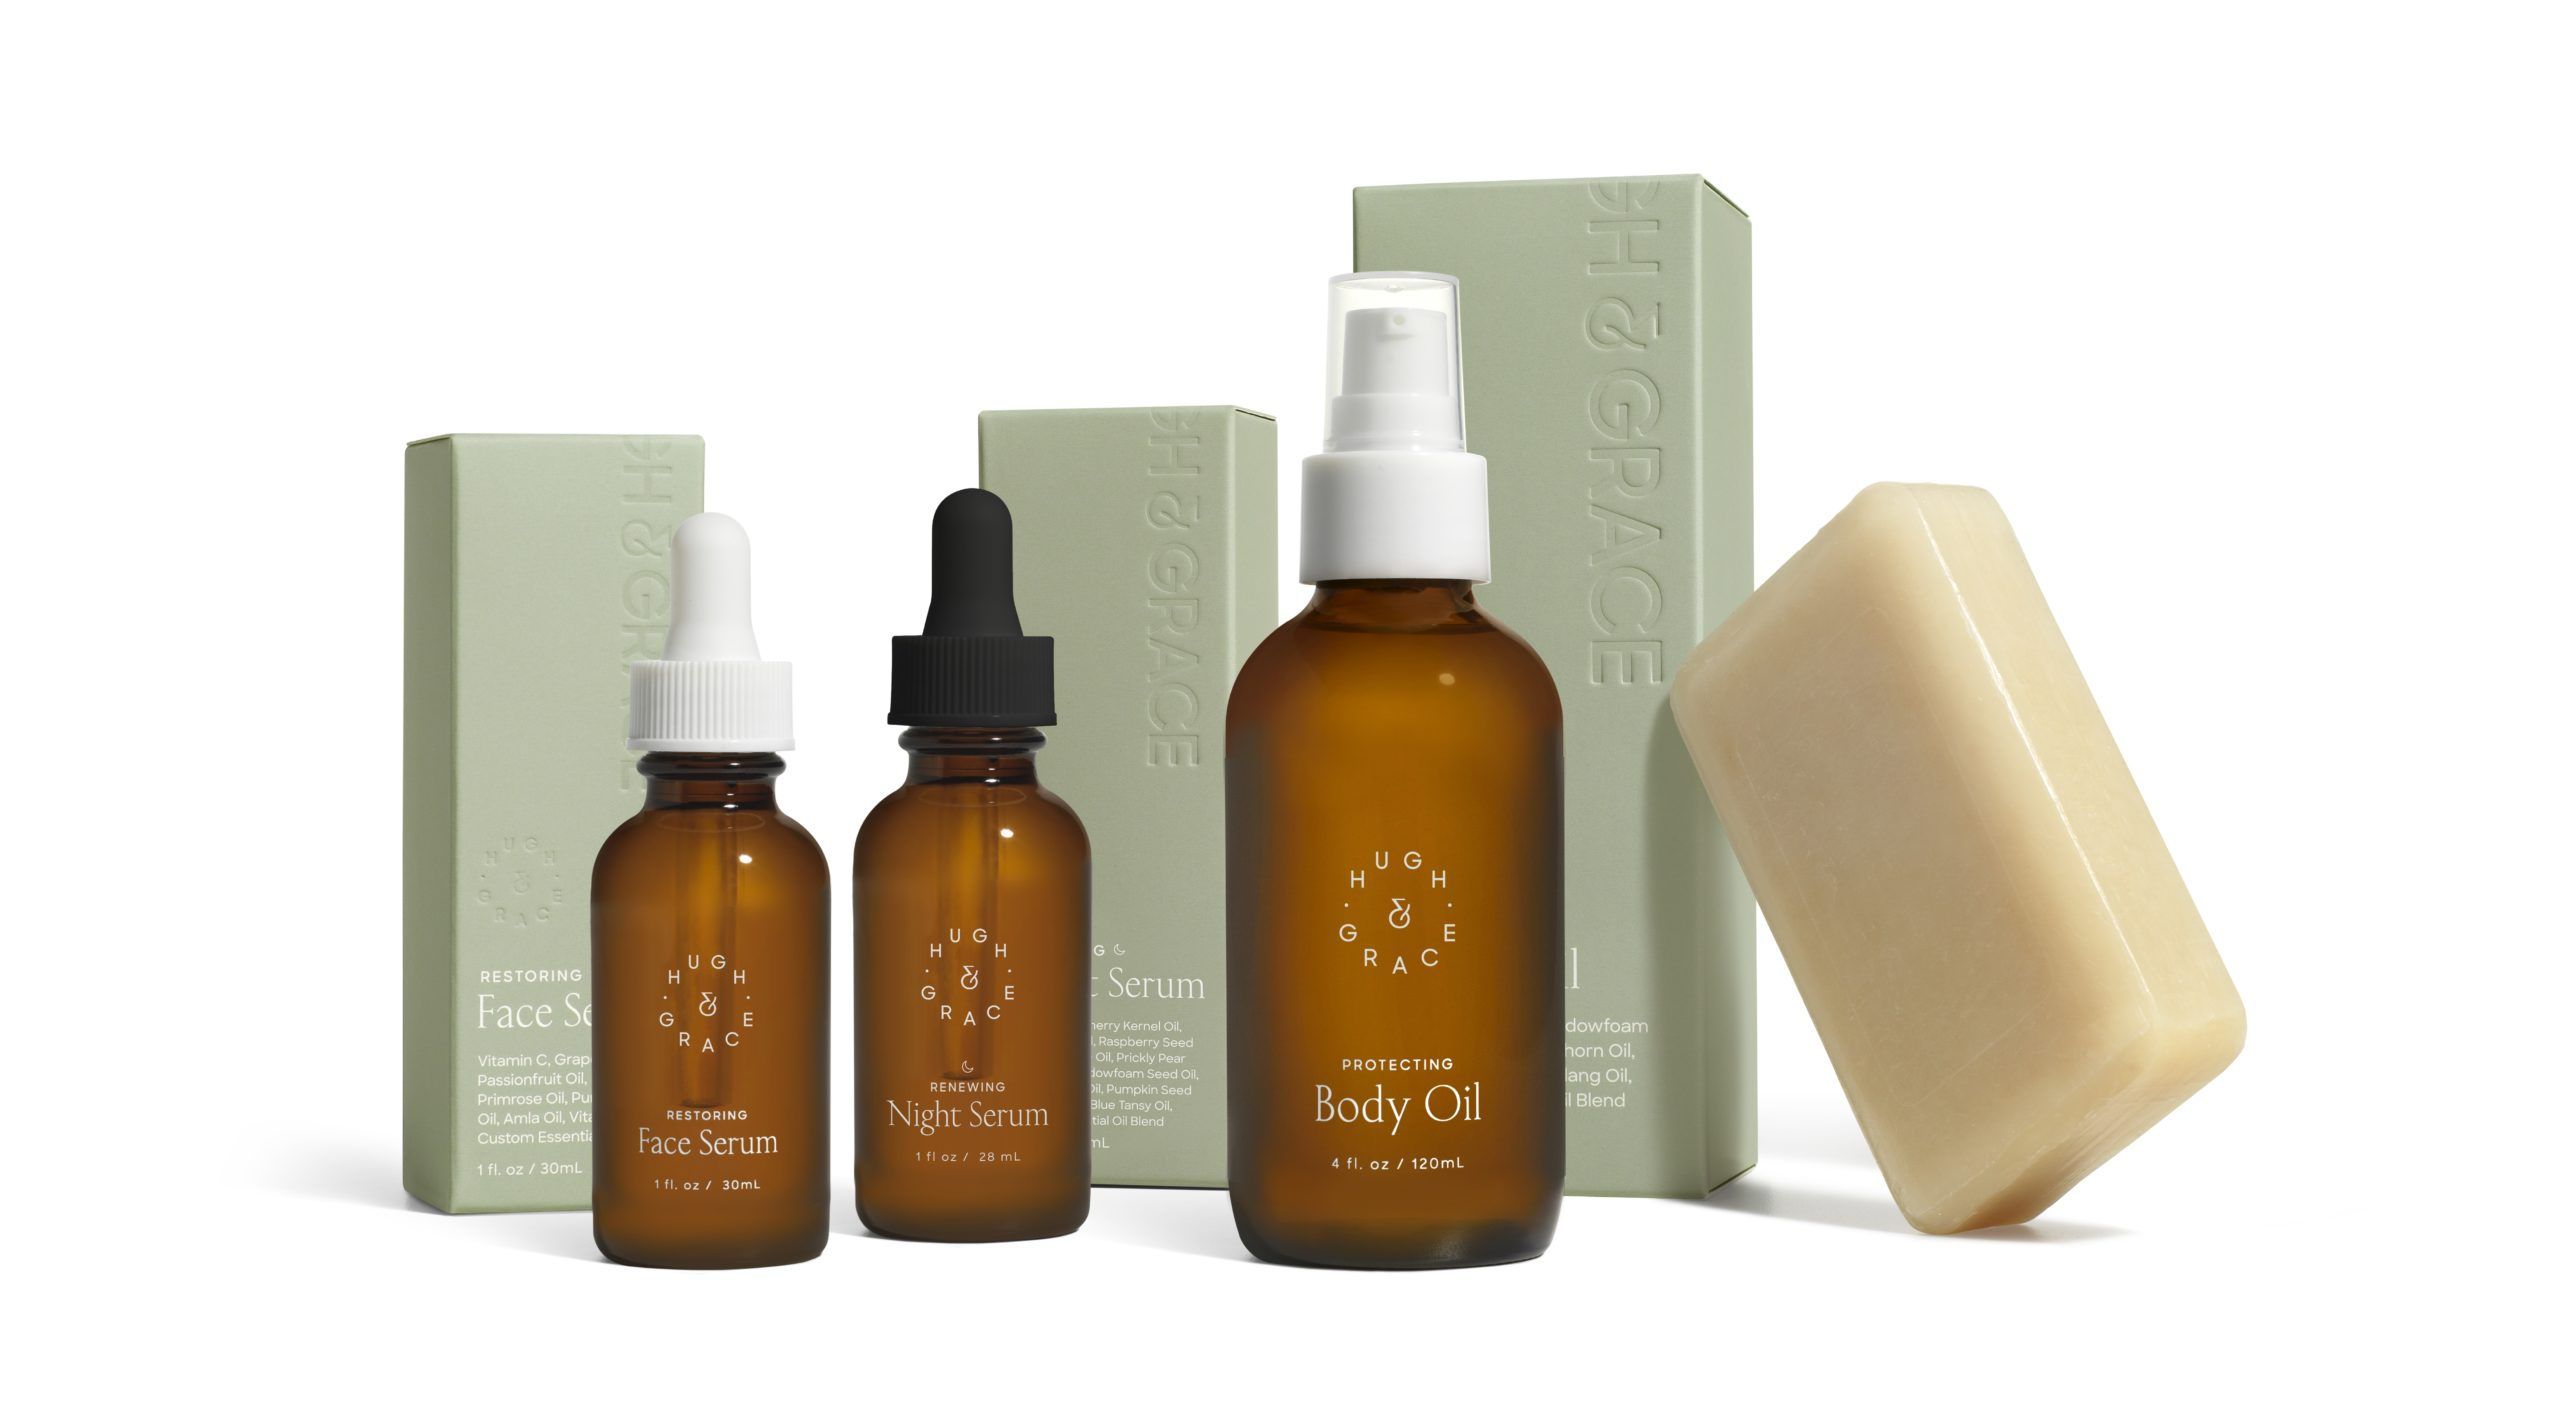 New Skincare Concept Hugh & Grace Introduces Nation's First Self-Care Brand Committed to Addressing Hormone Disruption Through Innovative Products & Education